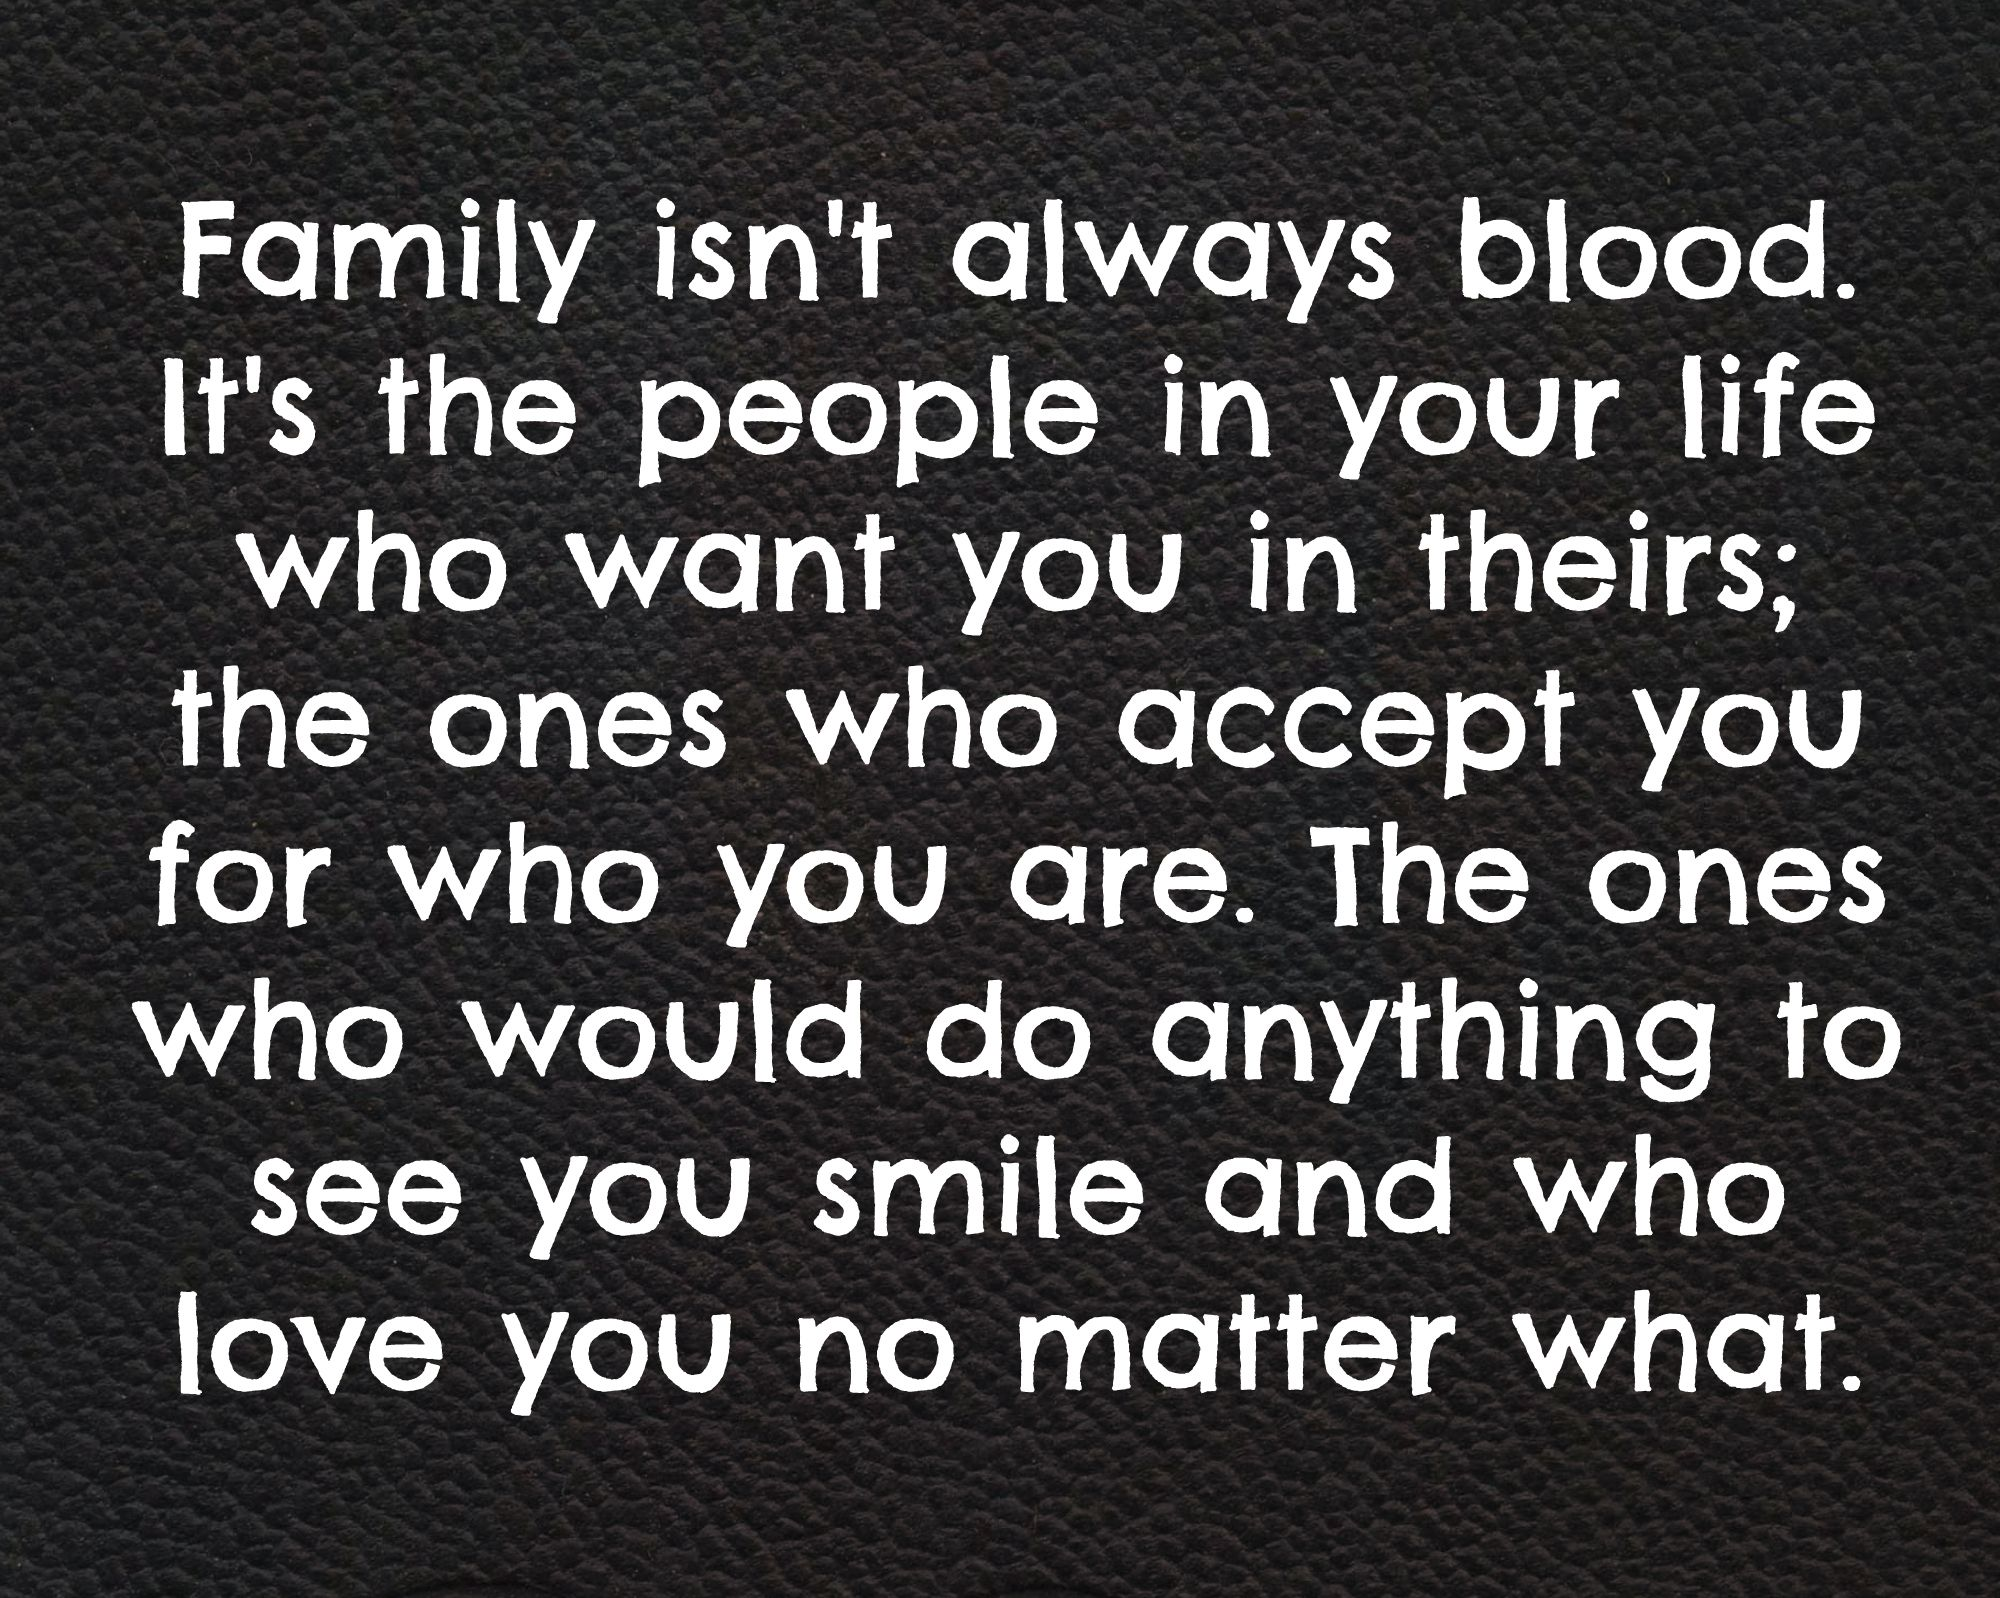 Family isn't always blood brotherhood bikers family